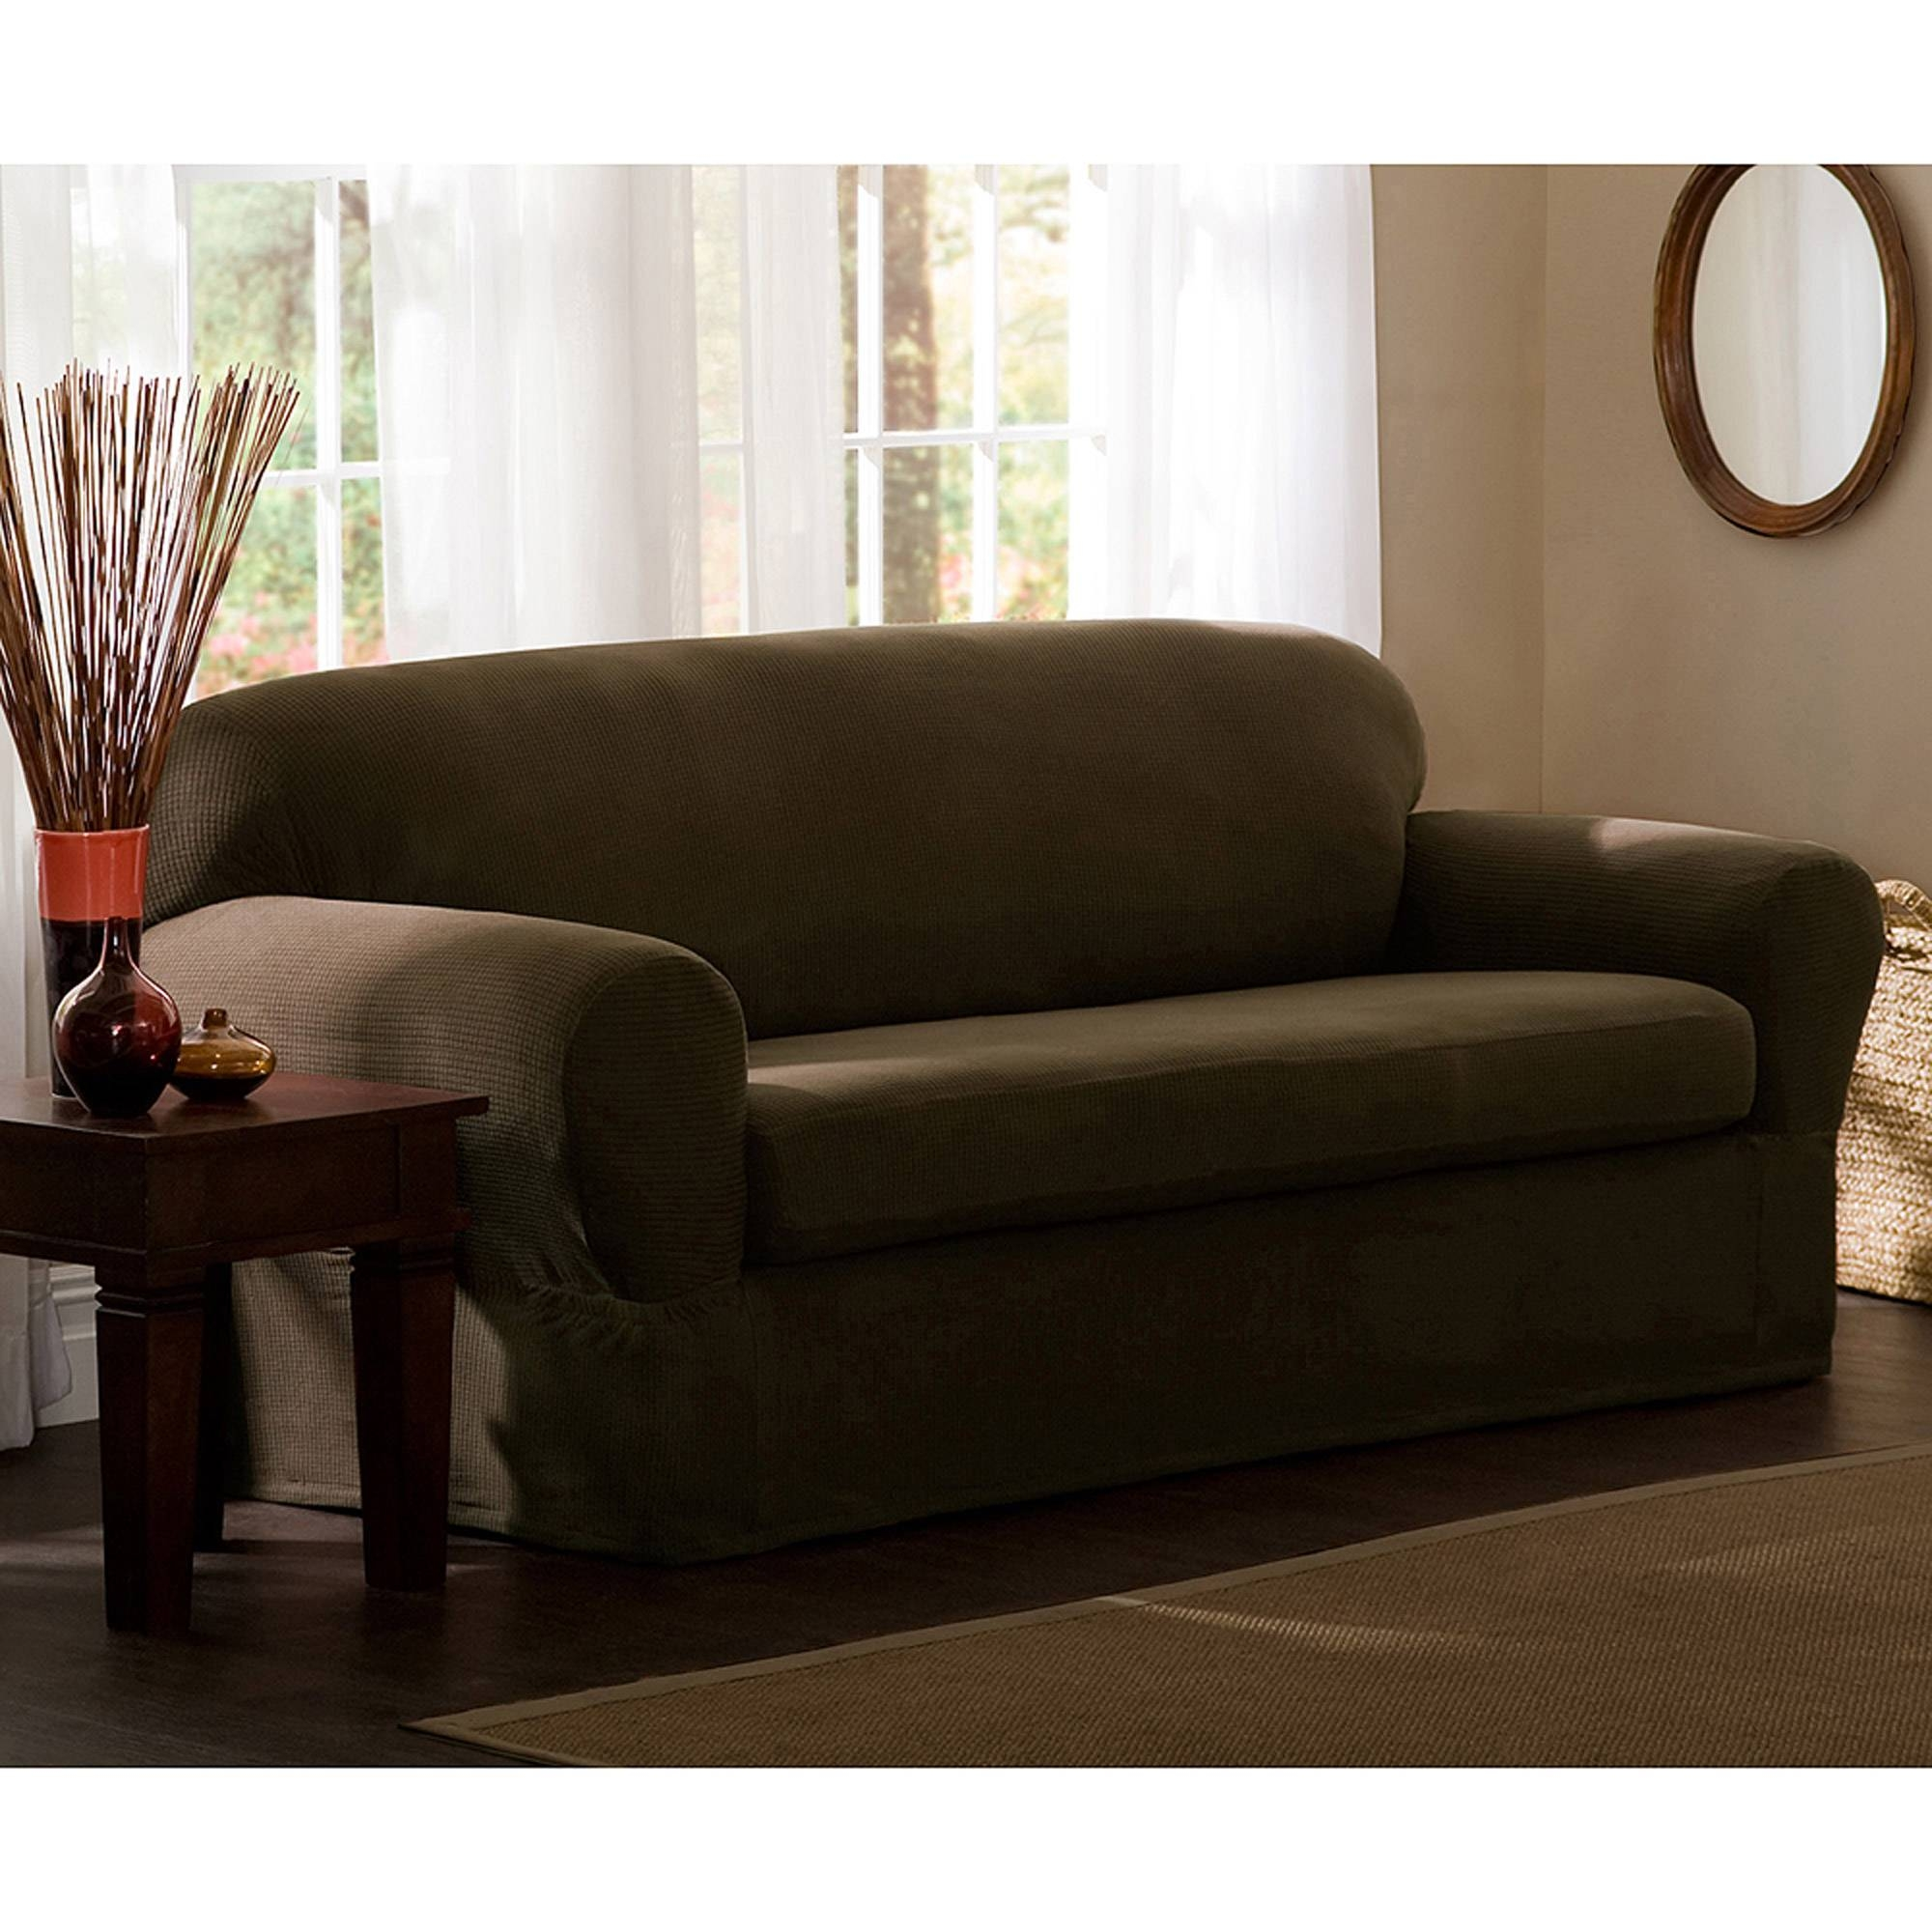 Furniture: Sofa Covers Walmart | Walmart Couch Covers | Slip with regard to Covers For Sofas (Image 16 of 30)